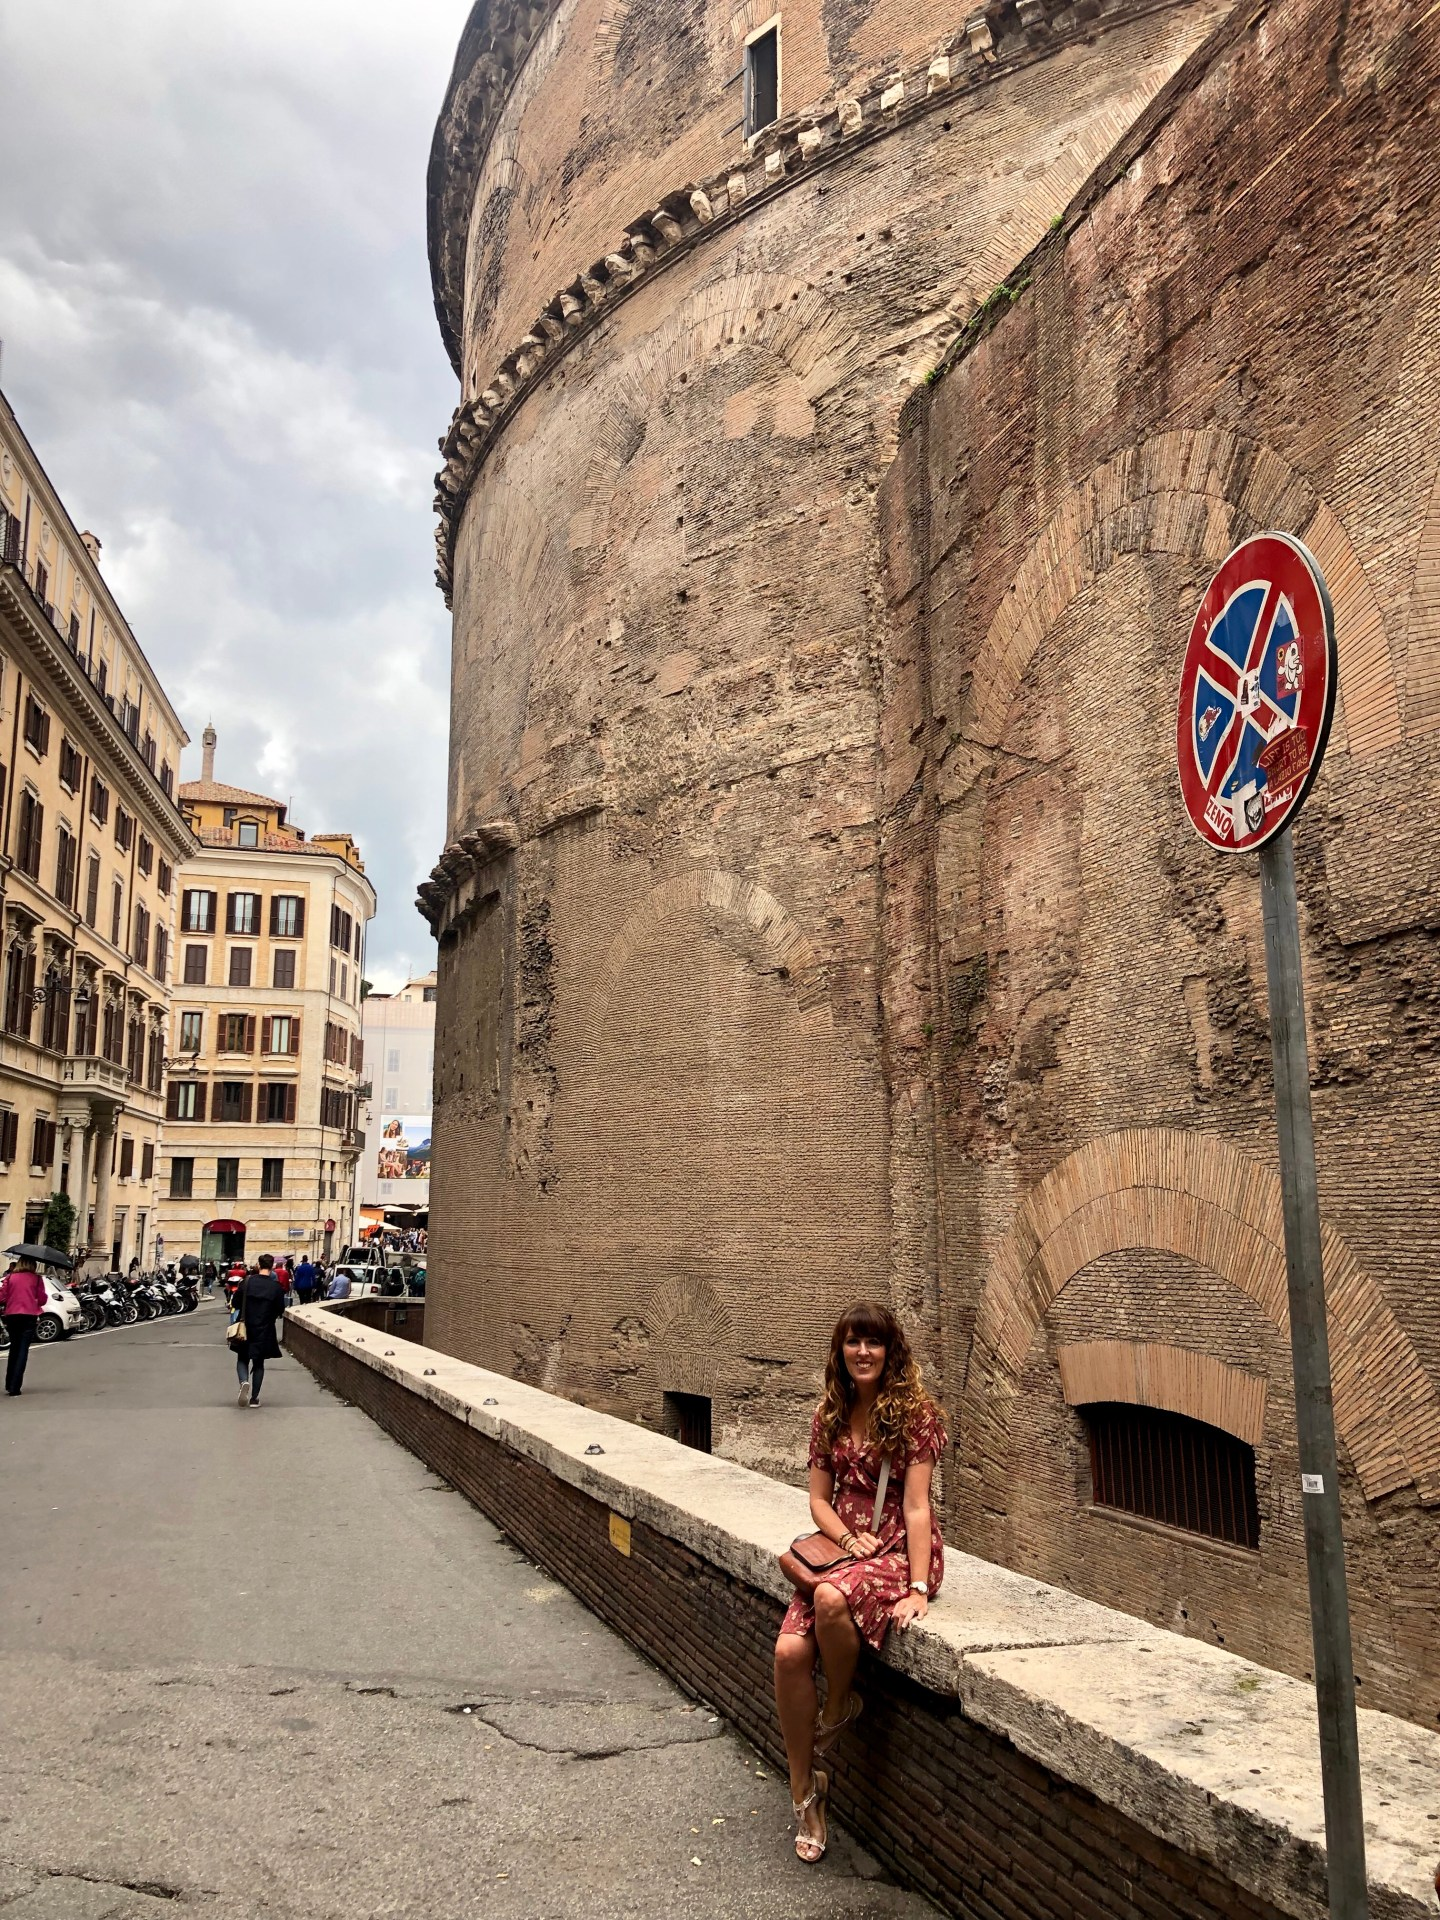 We approached the back of the Pantheontowards our next stop for pasta. The back of the Pantheon is just as fabulous architecture as the front.